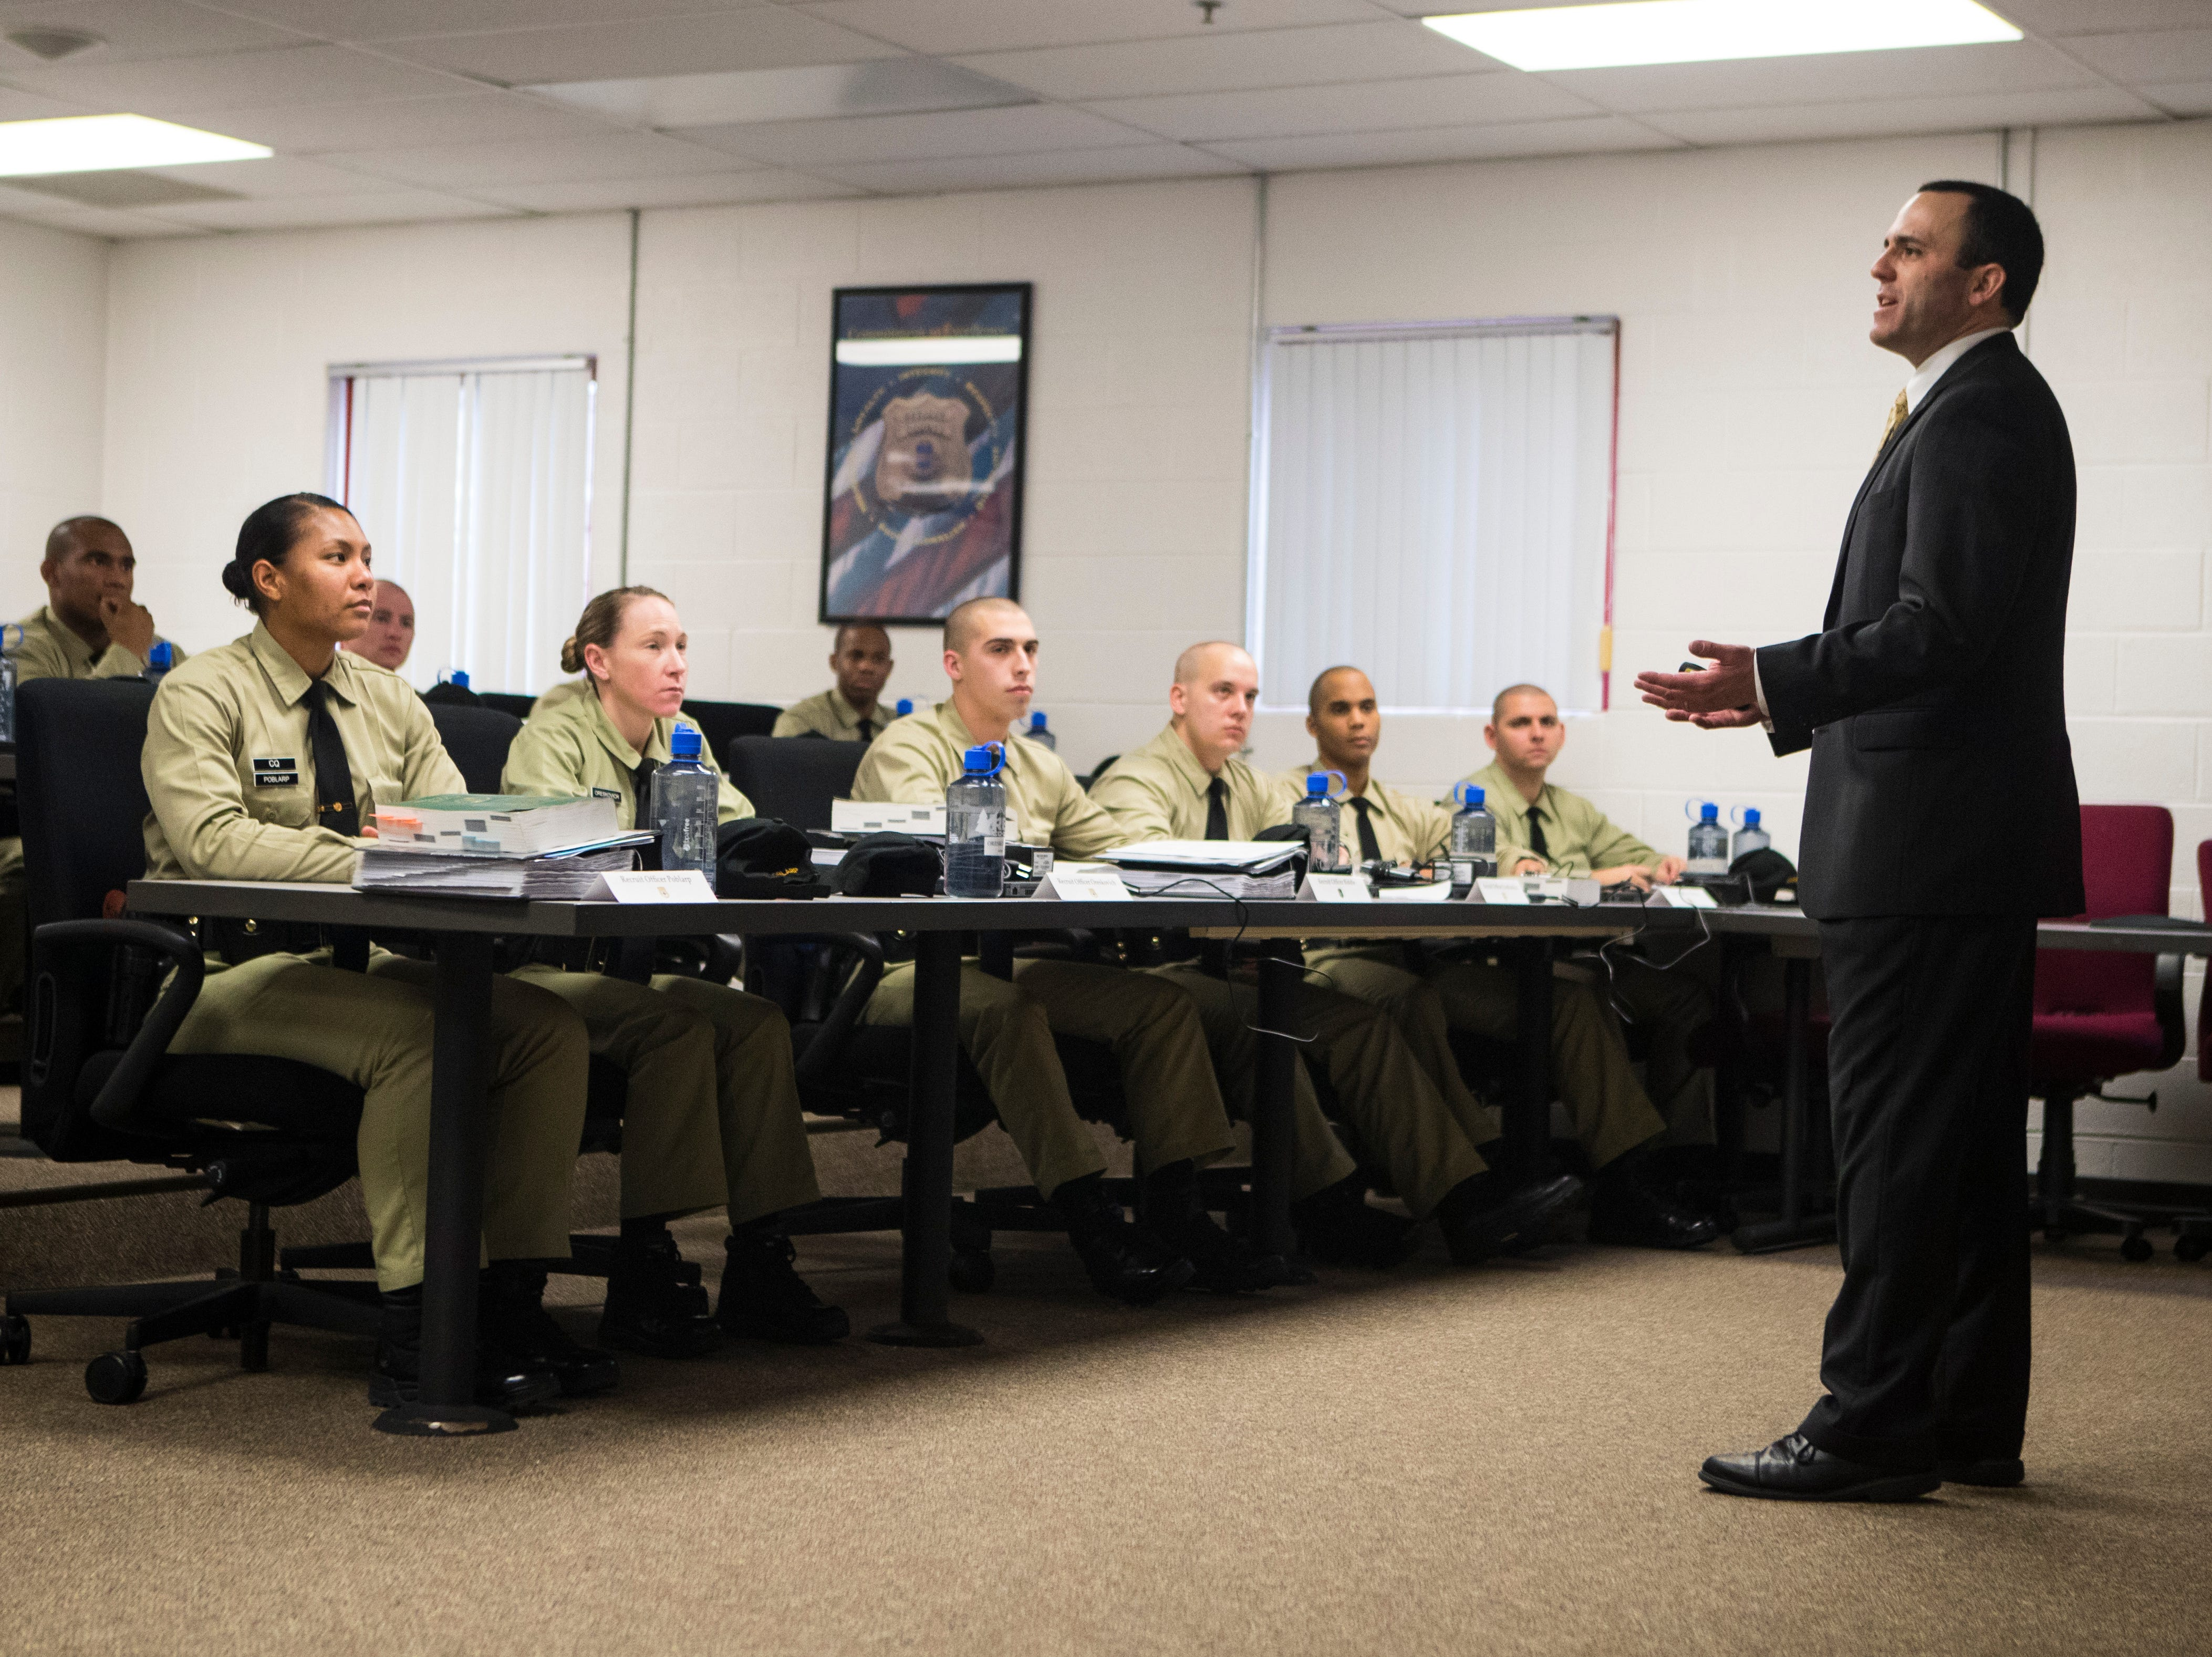 Recruits in the the New Castle County Police Academy listen to instruction from Lieutenant Andrew Rubin of the Newark Police Department during a classroom session Thursday, Jan. 24, 2019 at the Lieutenant Joseph L. Szczerba Police Academy.